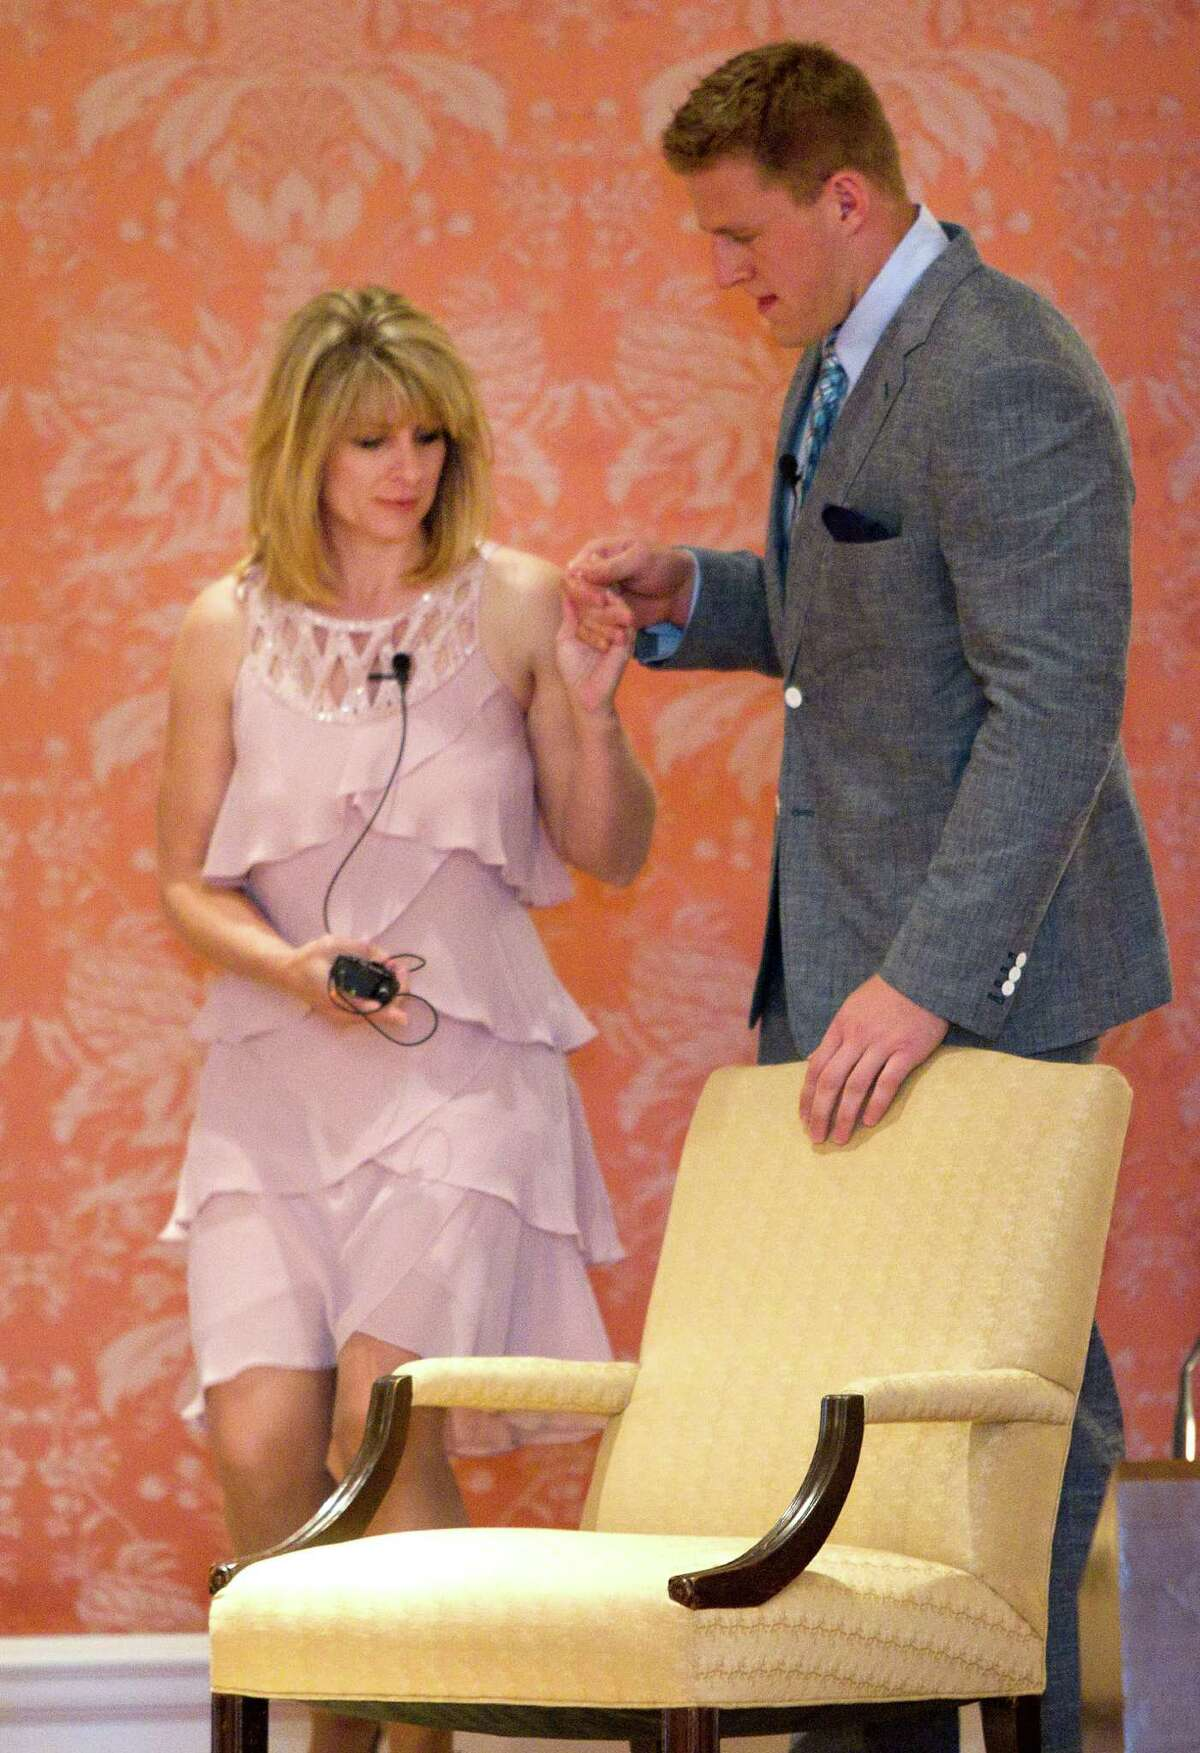 Houston Texans defensive end J.J. Watt helps his mom, Connie, to the stage as the mother and son are honored during a charity luncheon for Pro Vision Charter School Thursday, May 1, 2014, in Houston.